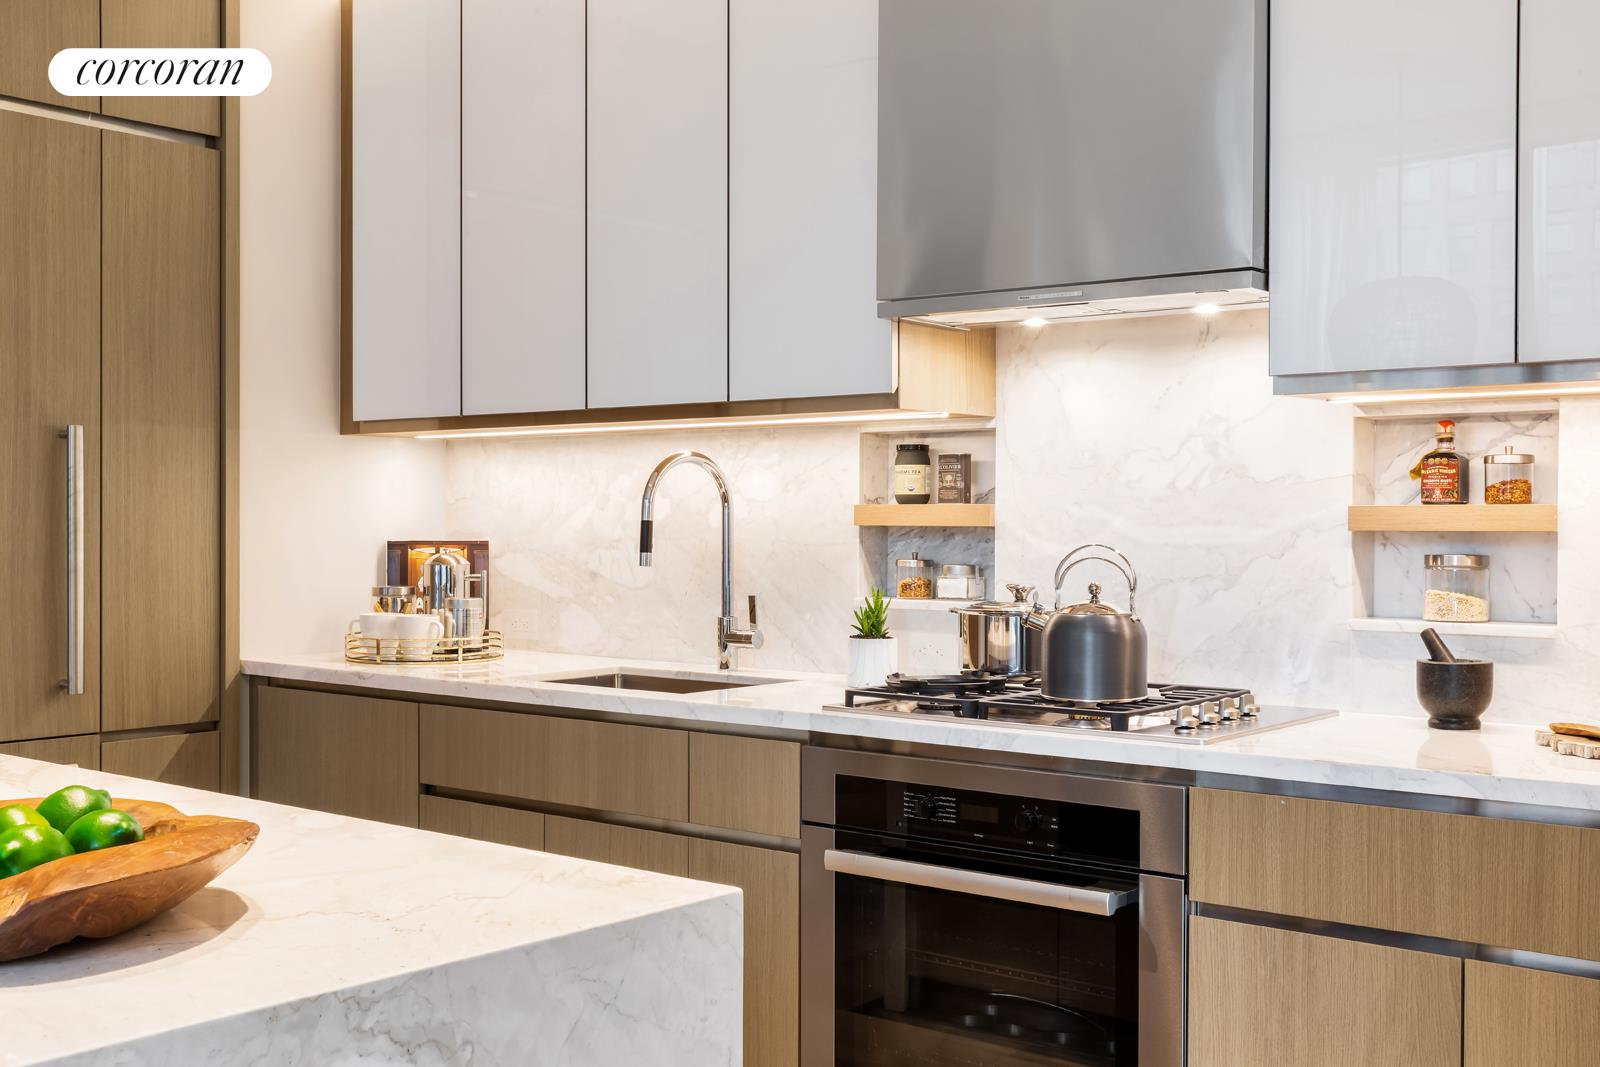 Apartment for sale at 277 Fifth Avenue, Apt 28C